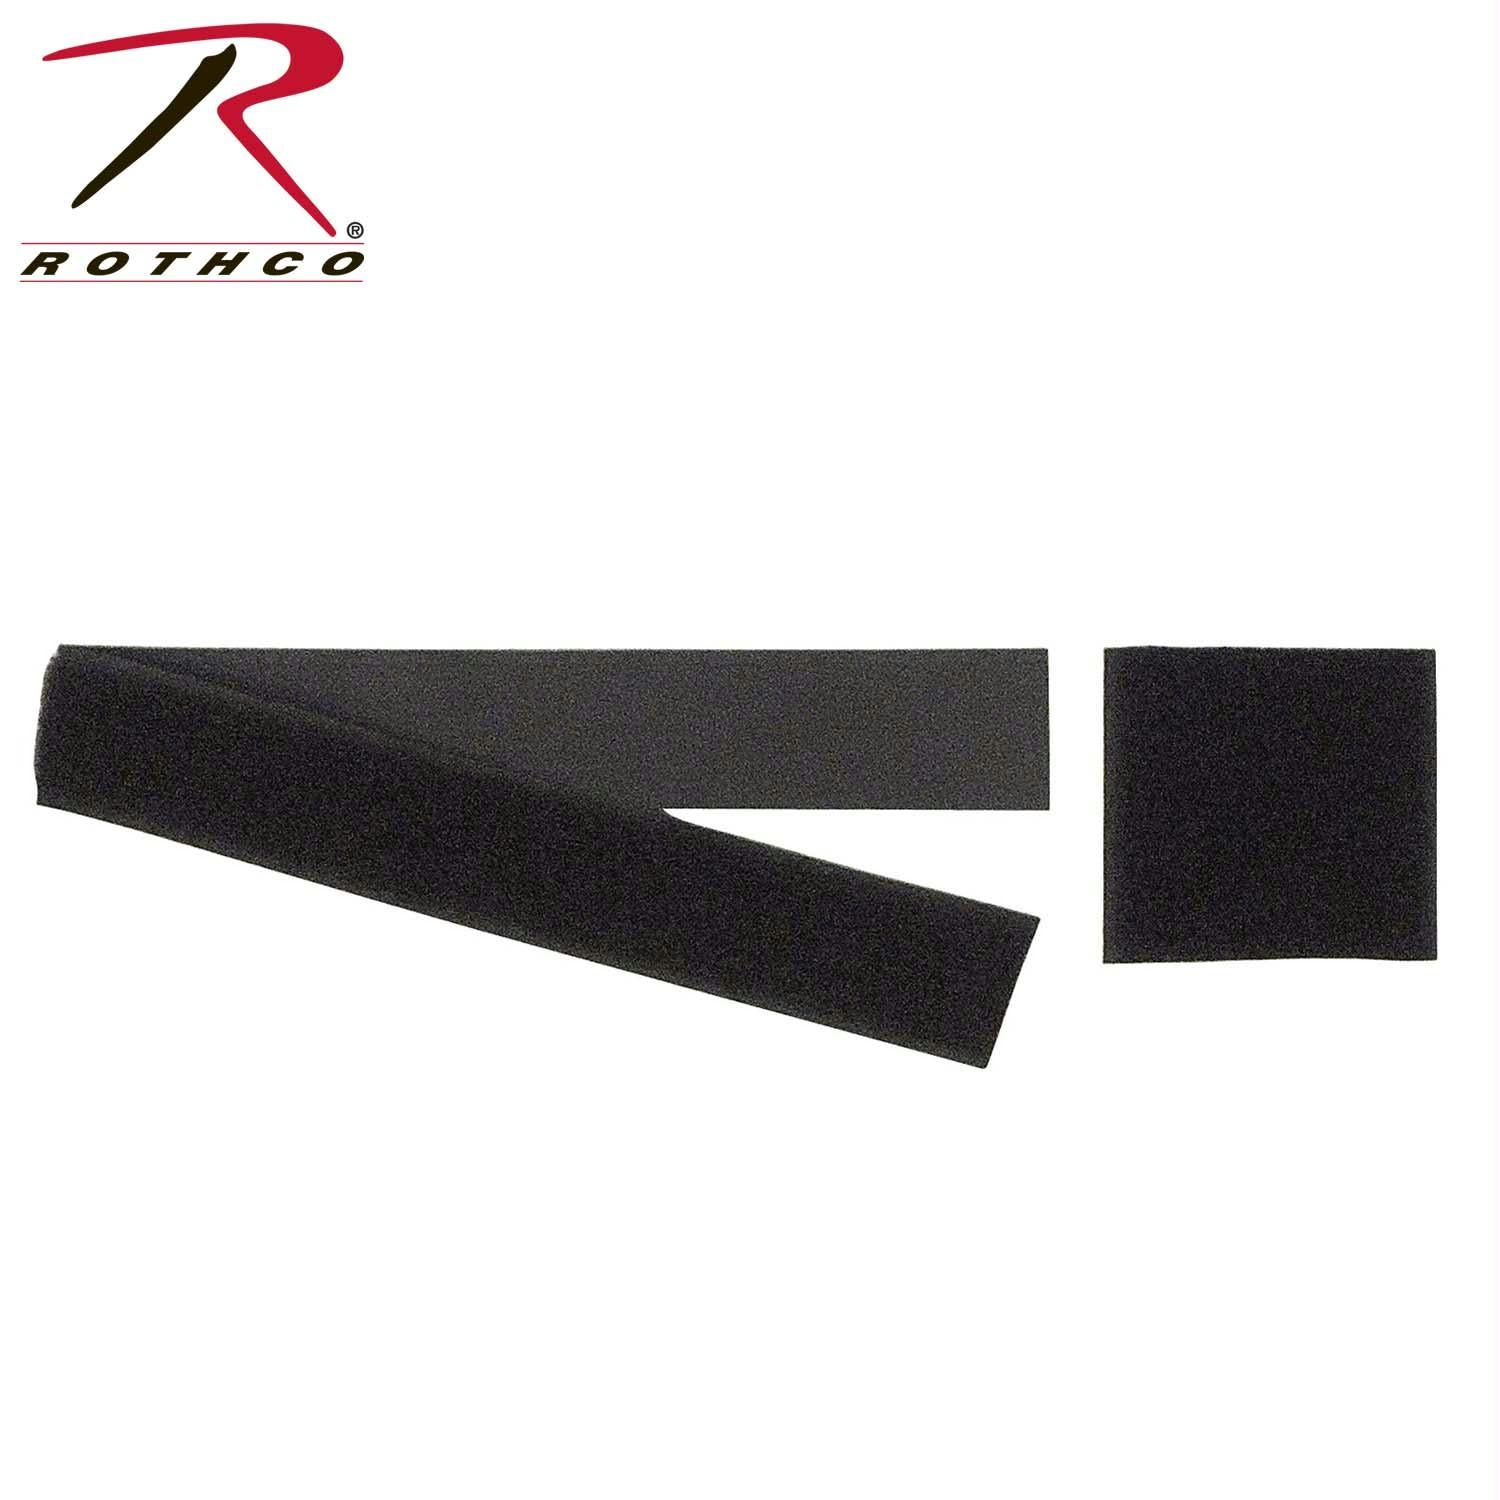 Rothco Sew-On Insignia Attachment Kit For ECWCS Liner - Black